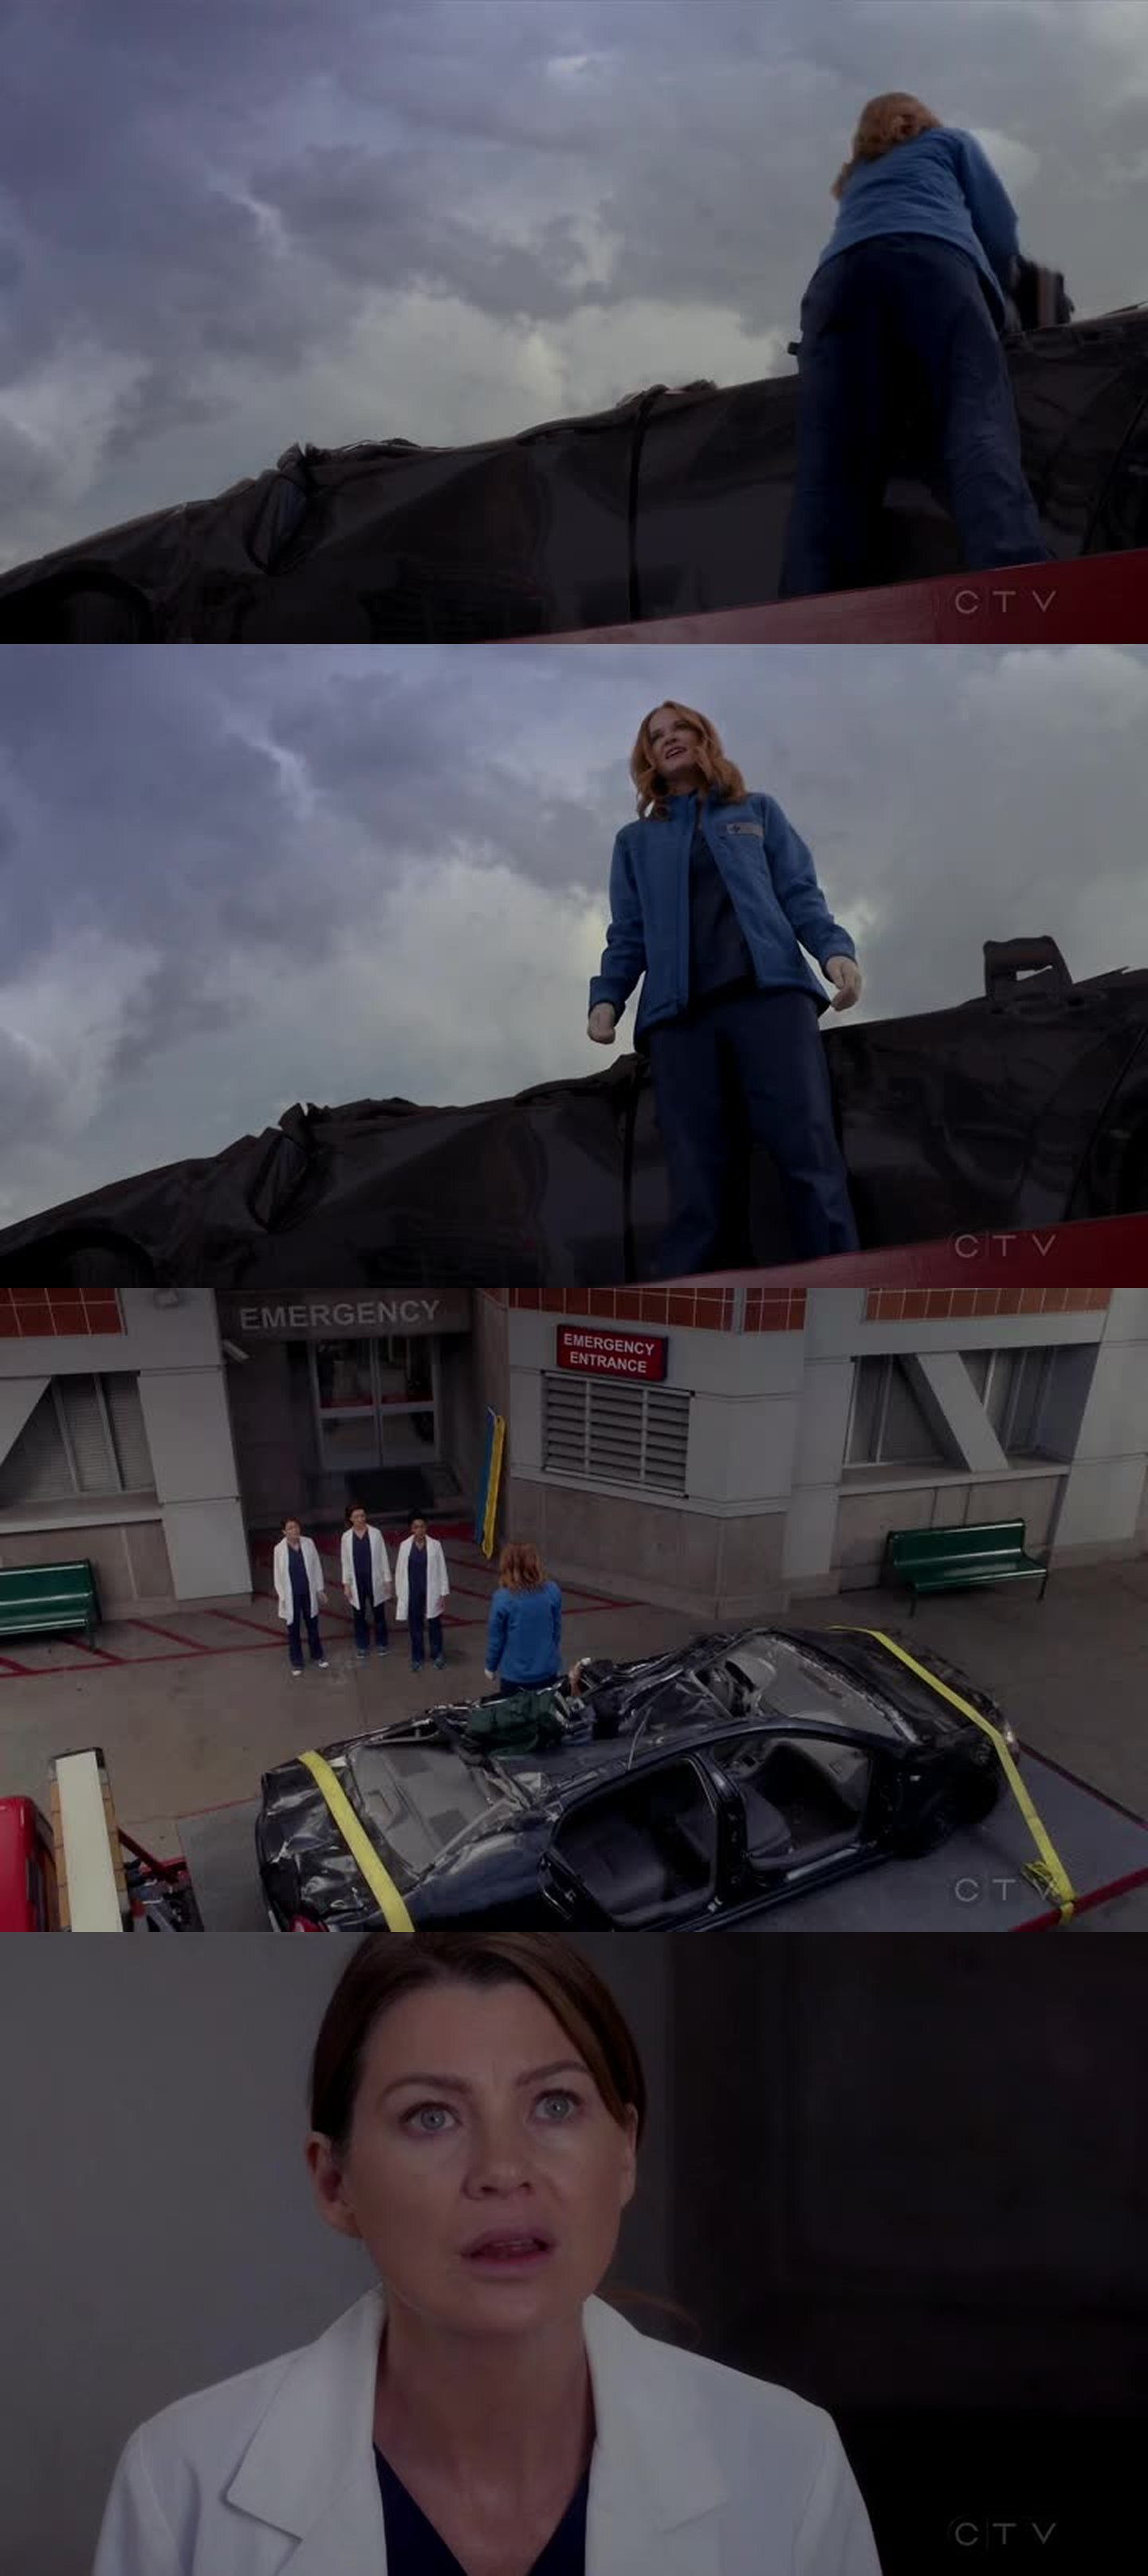 Yep. That last image of April standing on the top of the car like a warrior was pretty cool!